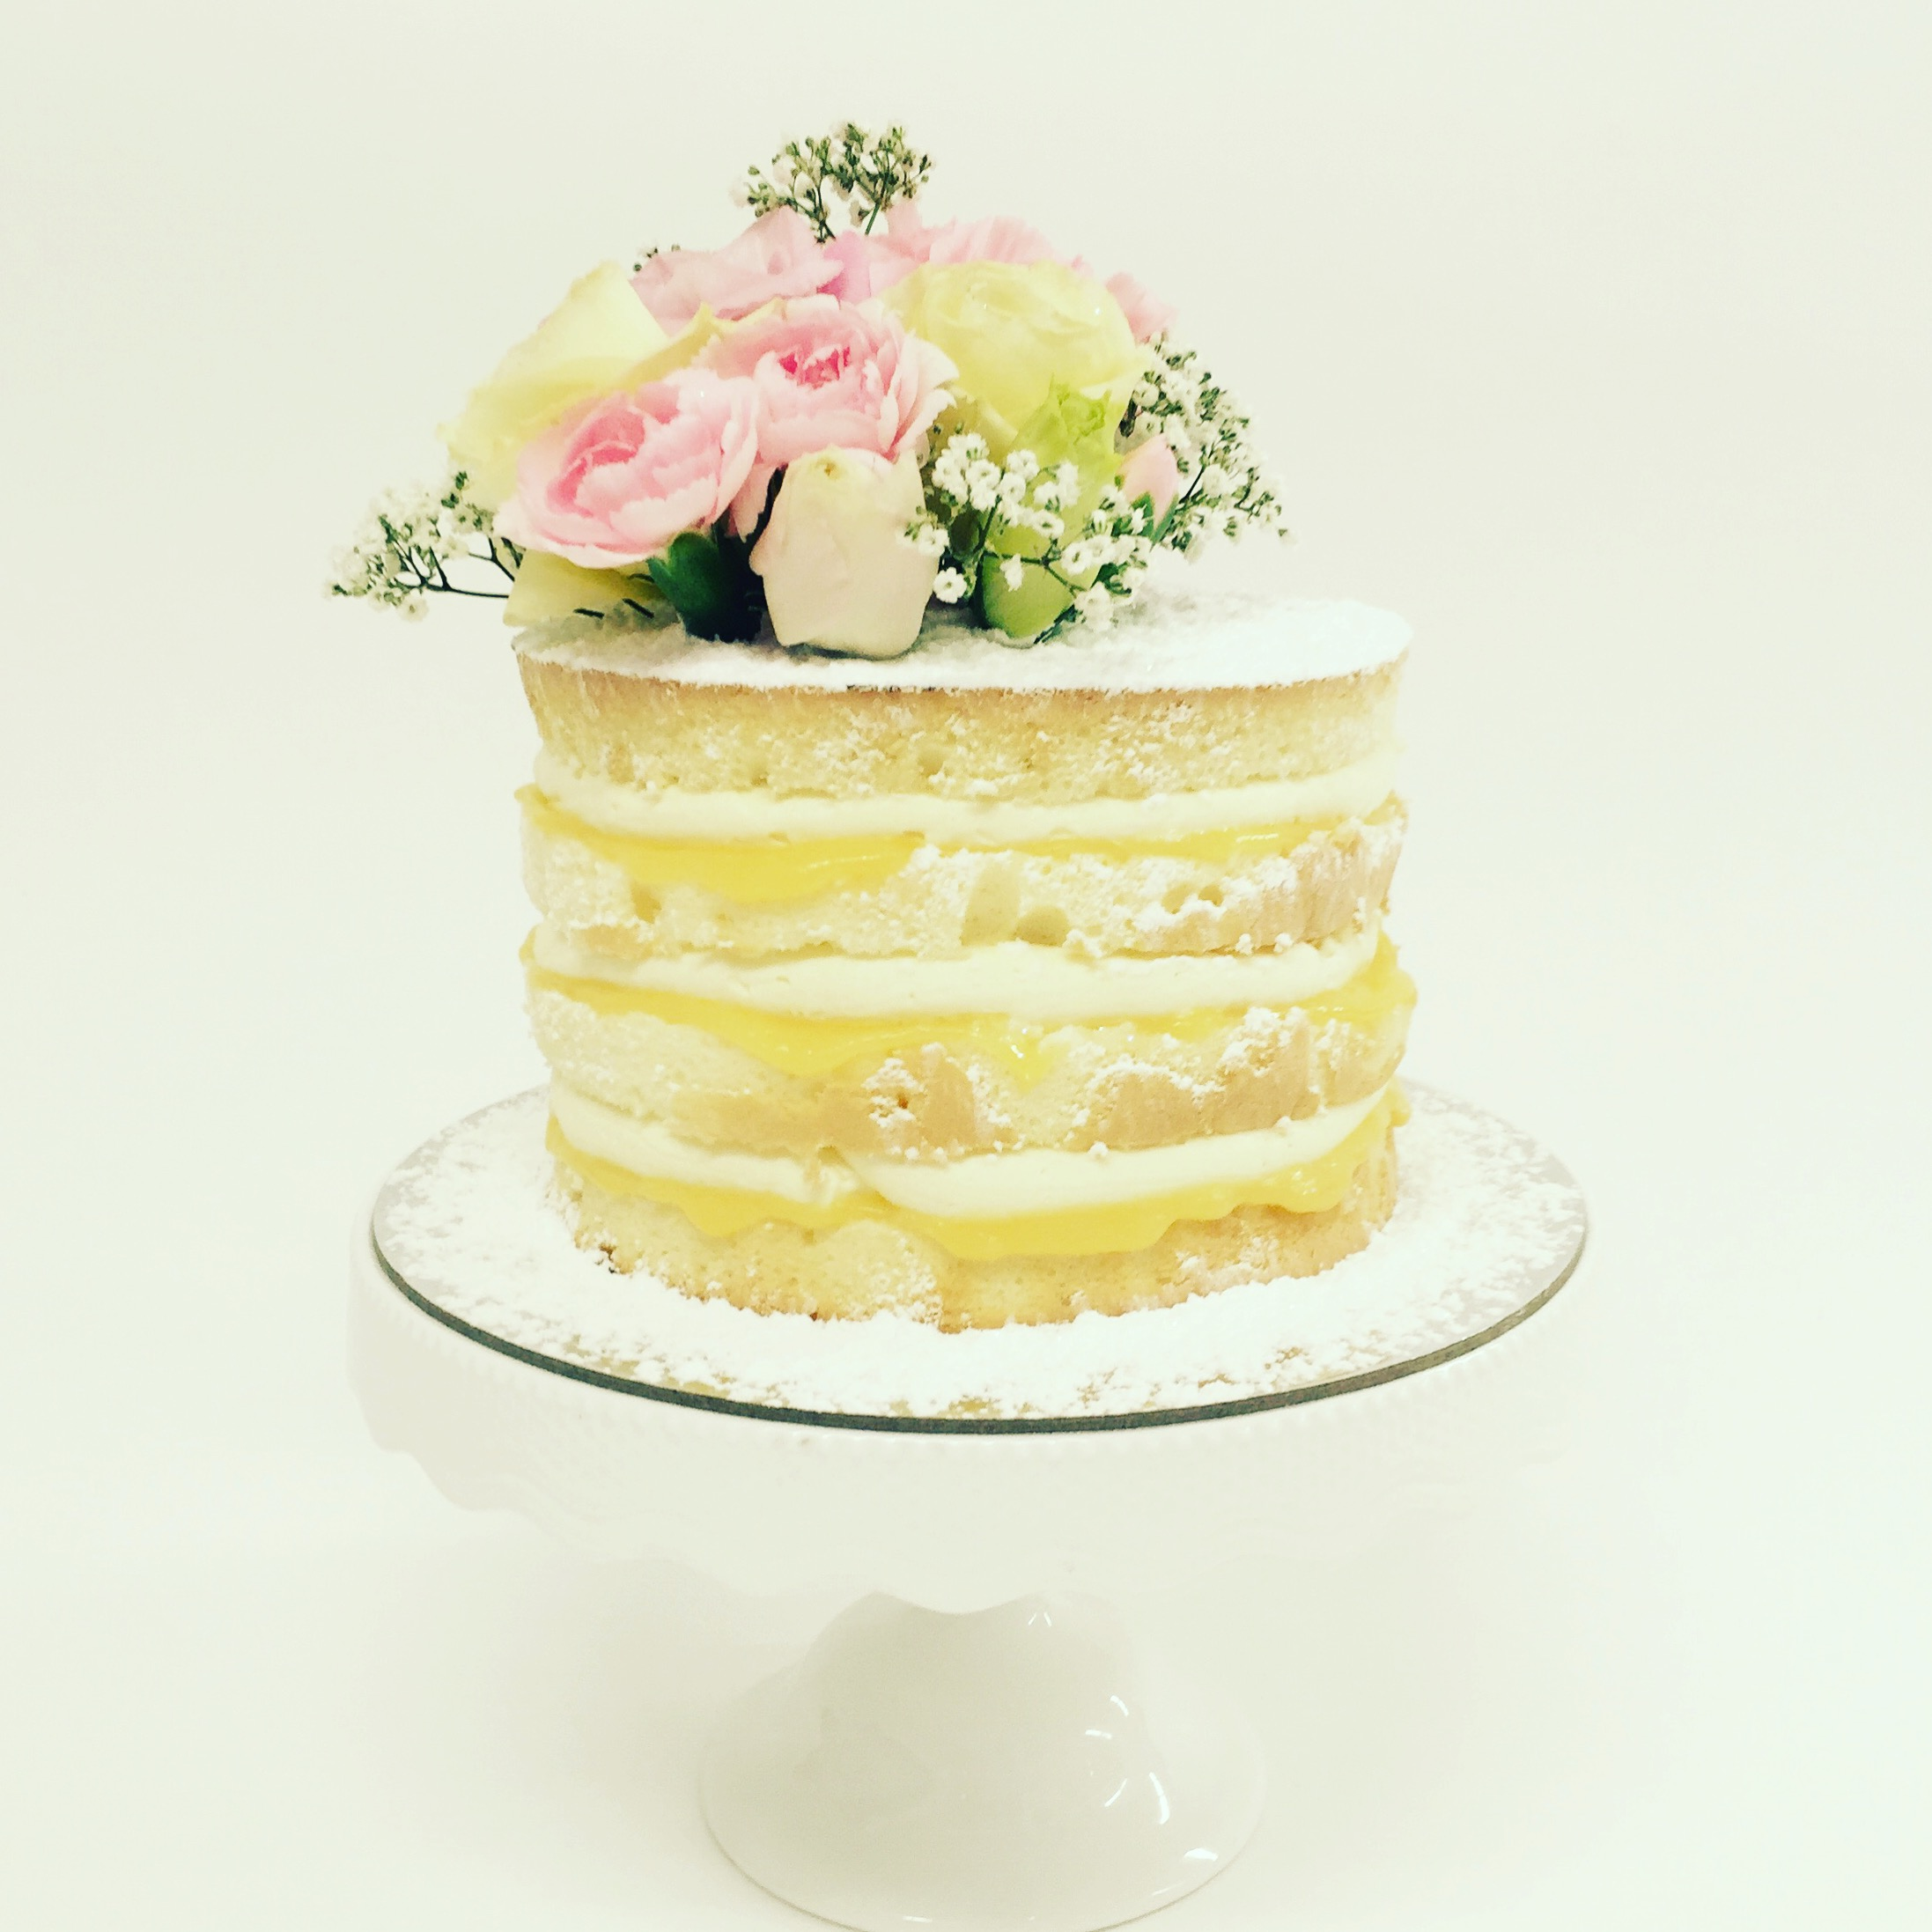 Vanilla pod Engagement Cake topped with fresh flowers Brisbane Naked Layer Cake lemon.JPG